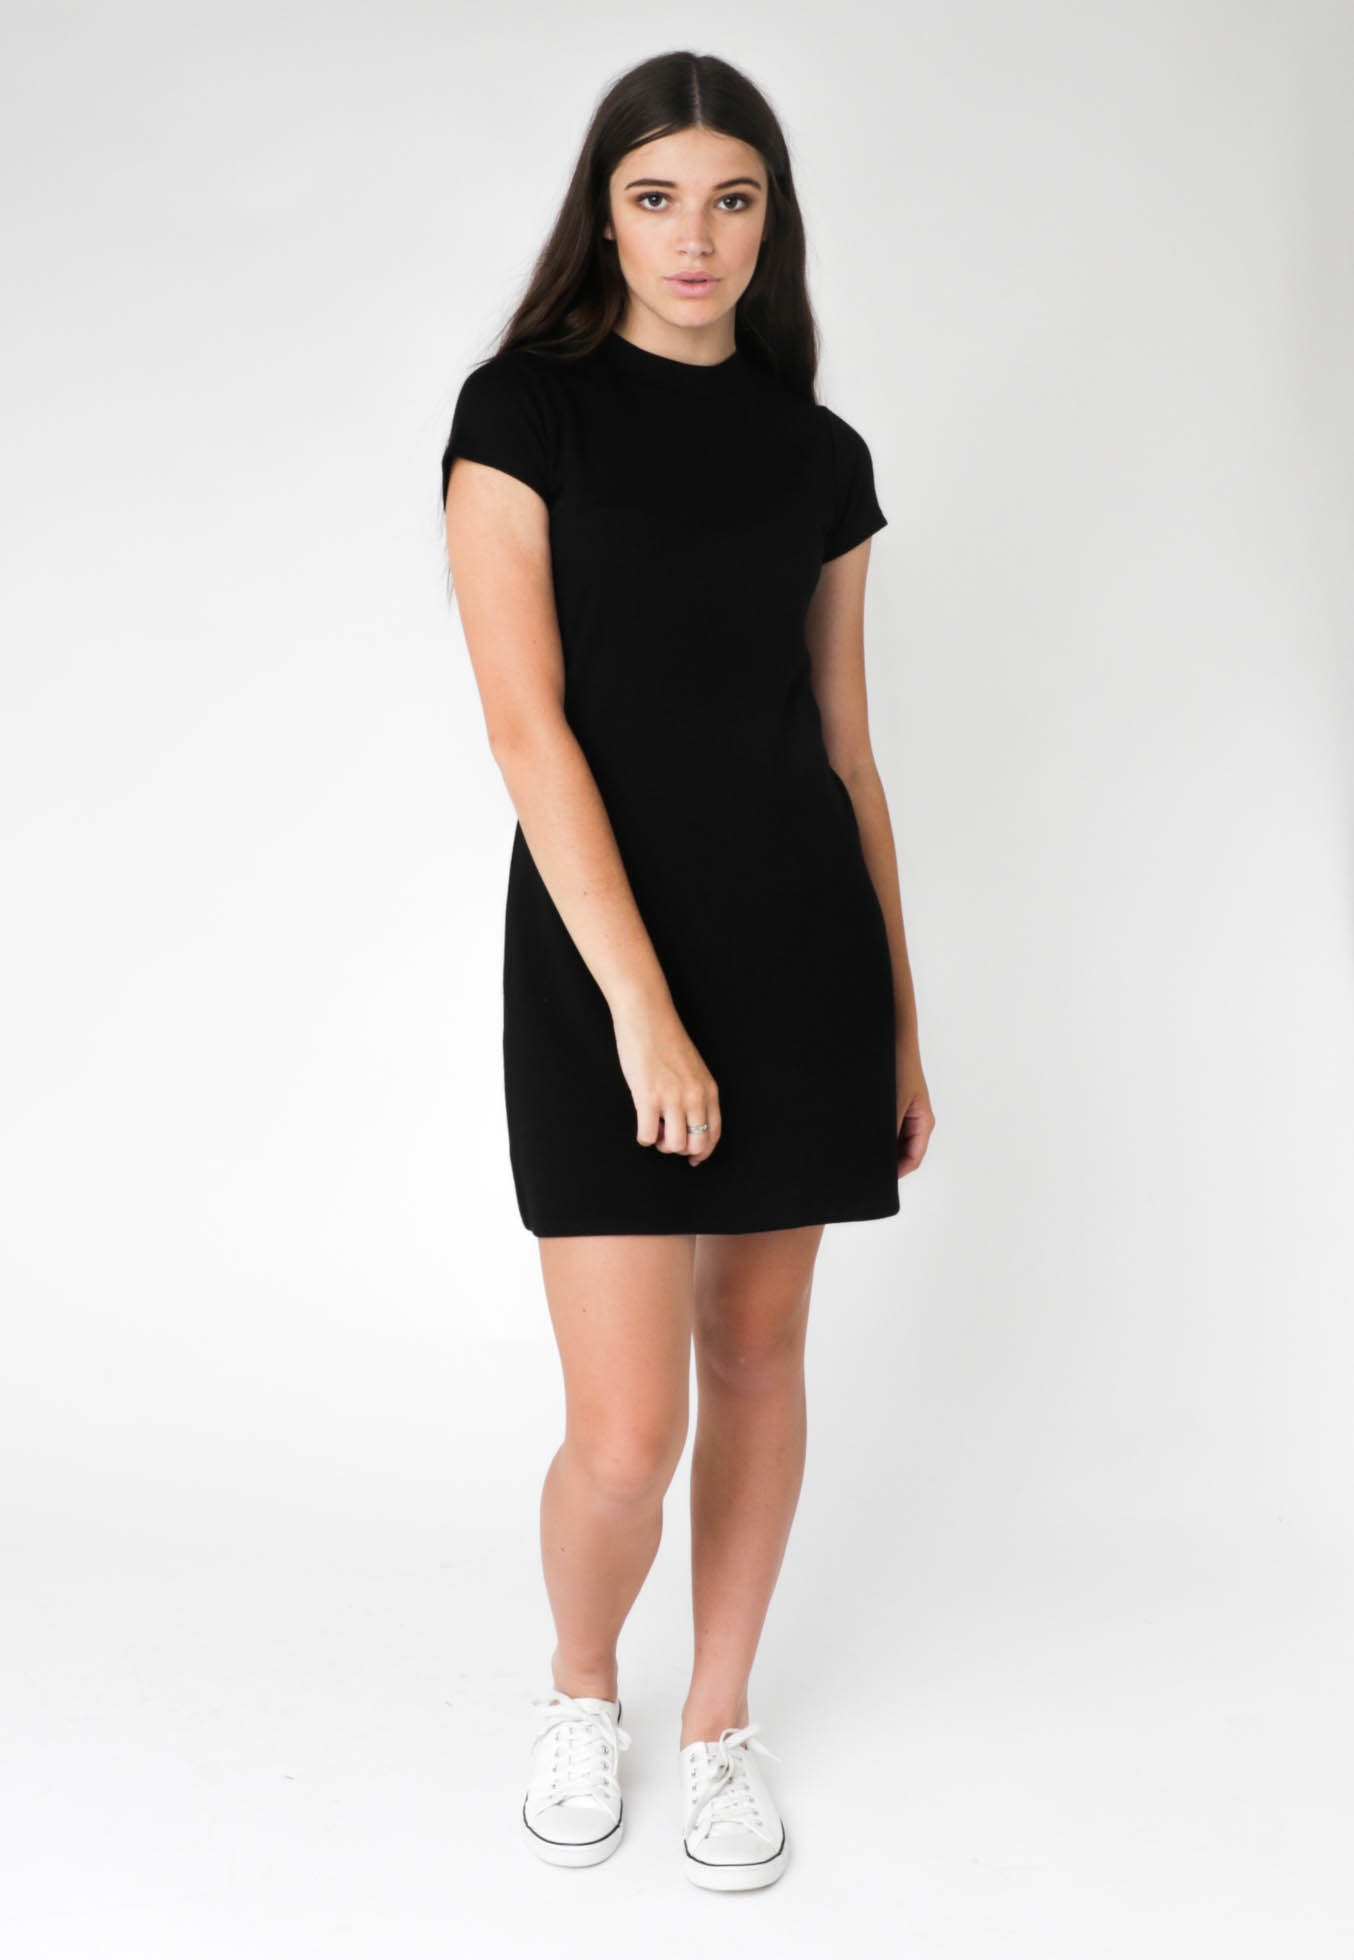 Silent Theory - Running Free Dress - Black